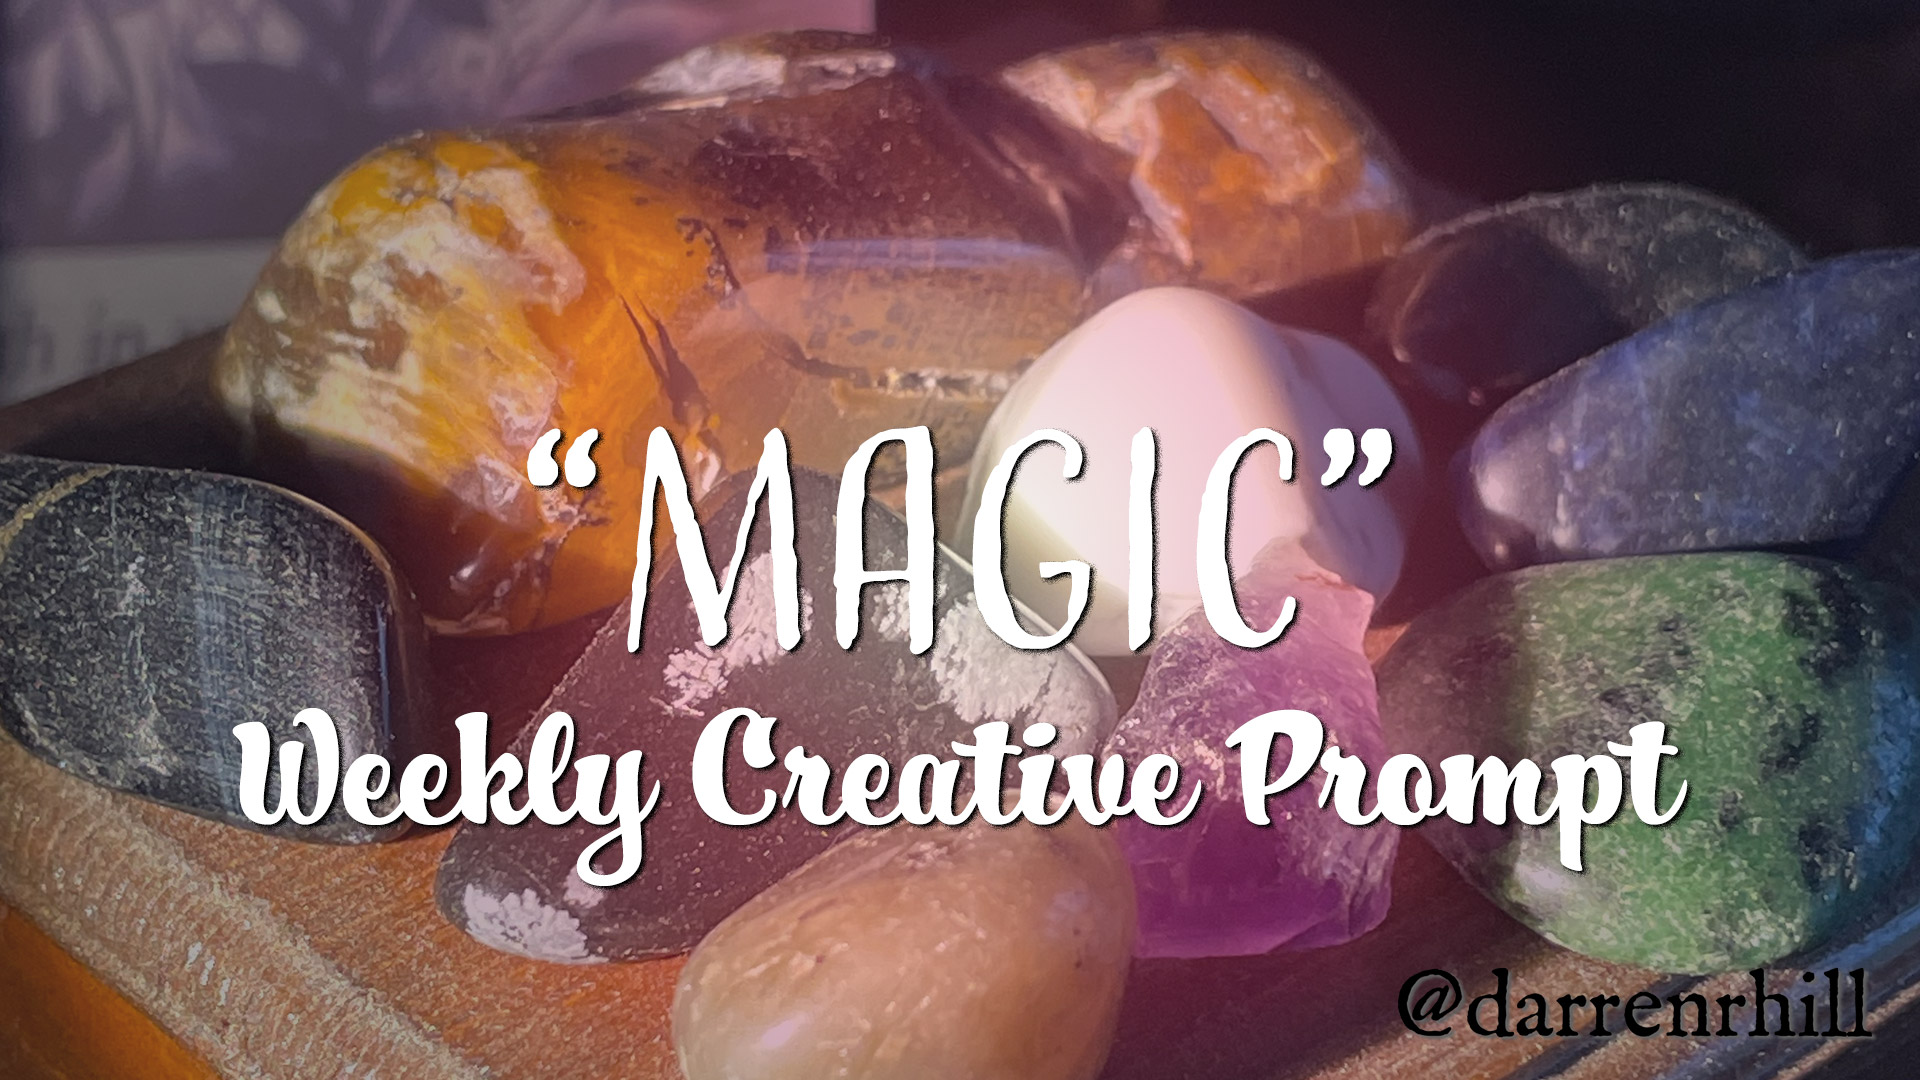 Exploring magic in this weekly creative prompt